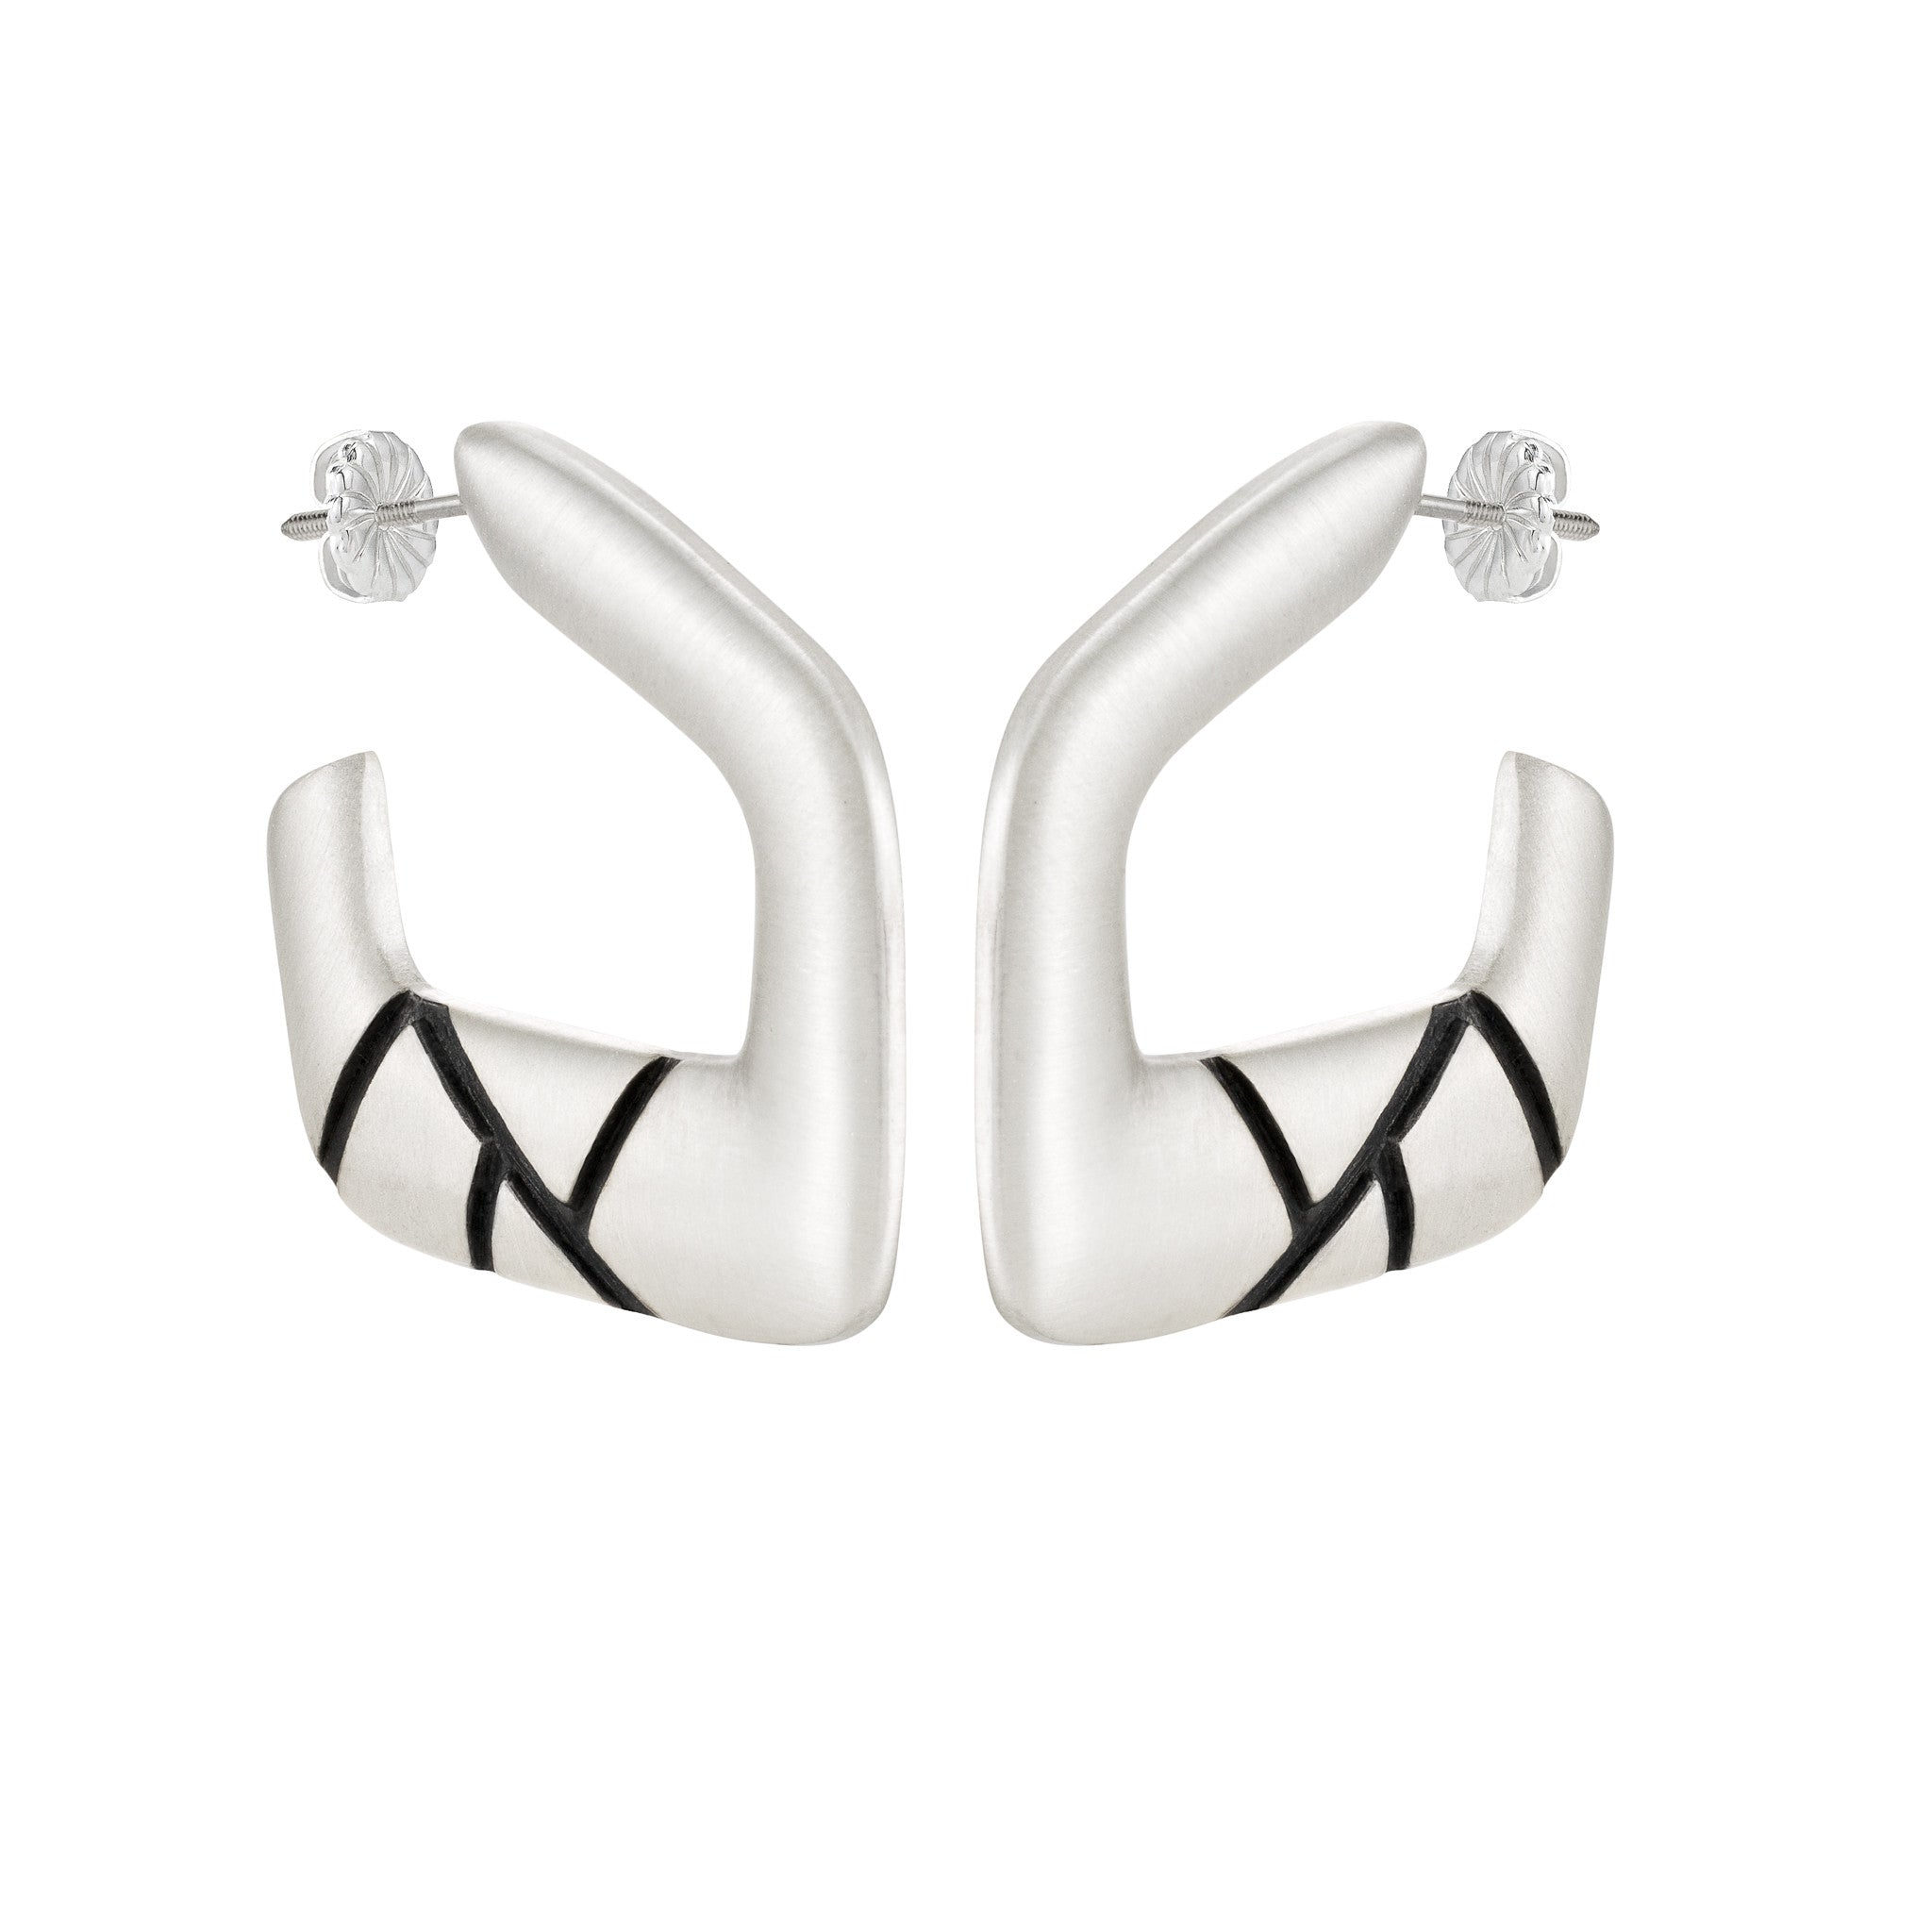 Asymmetrical Hoop Earrings: Satin